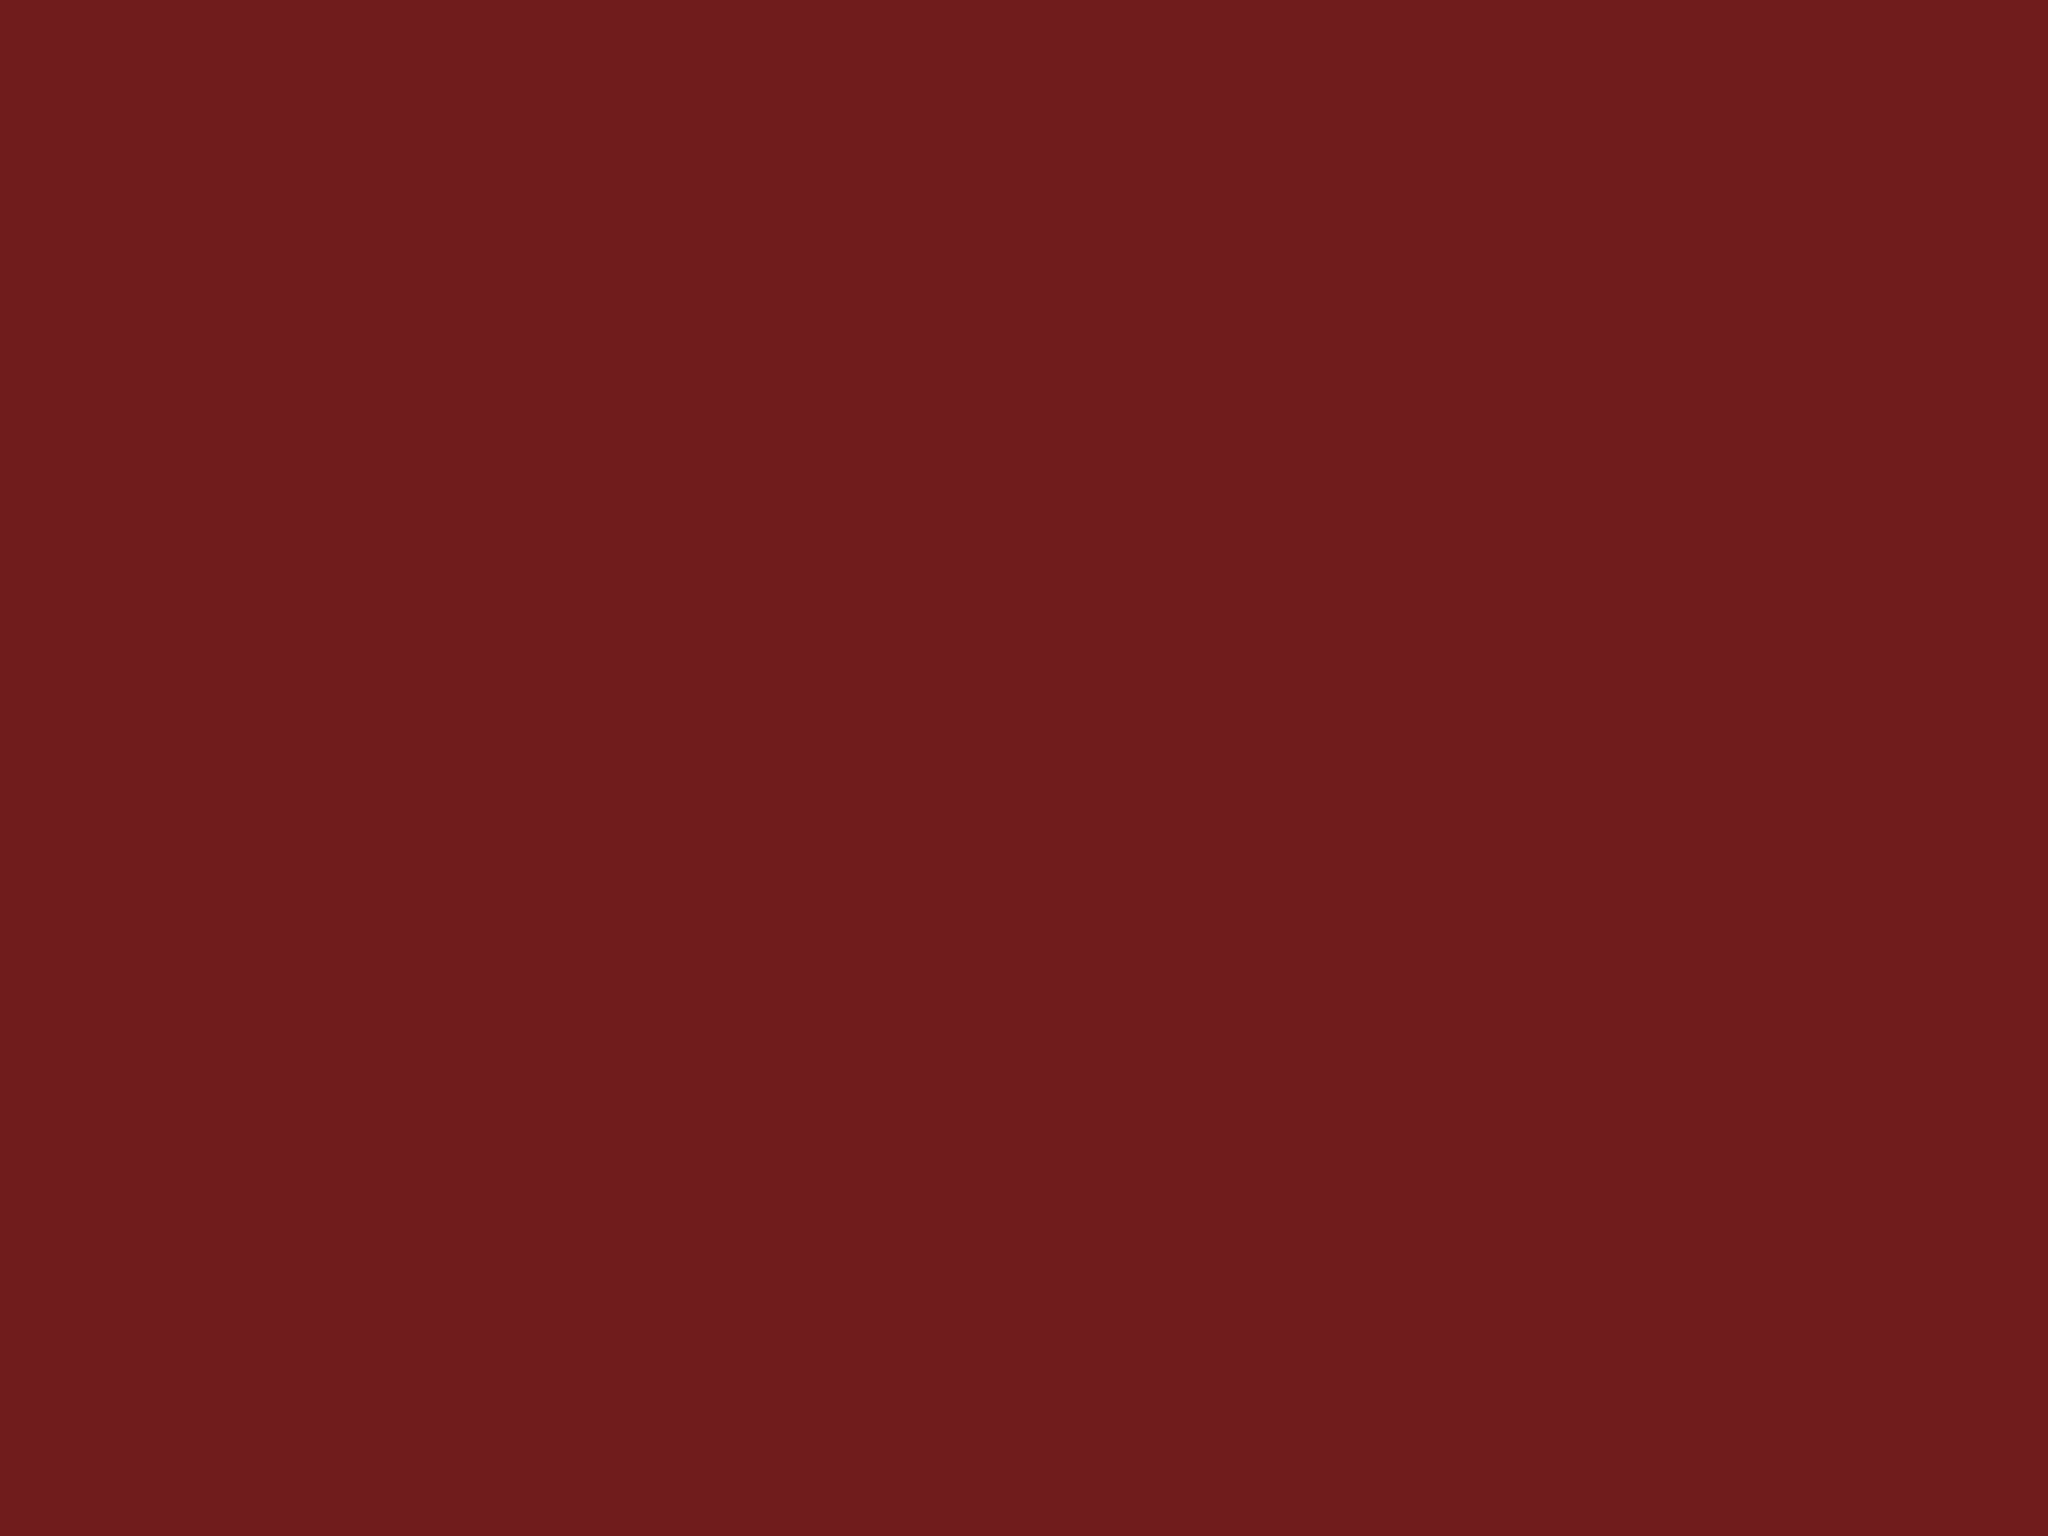 2048x1536 Prune Solid Color Background